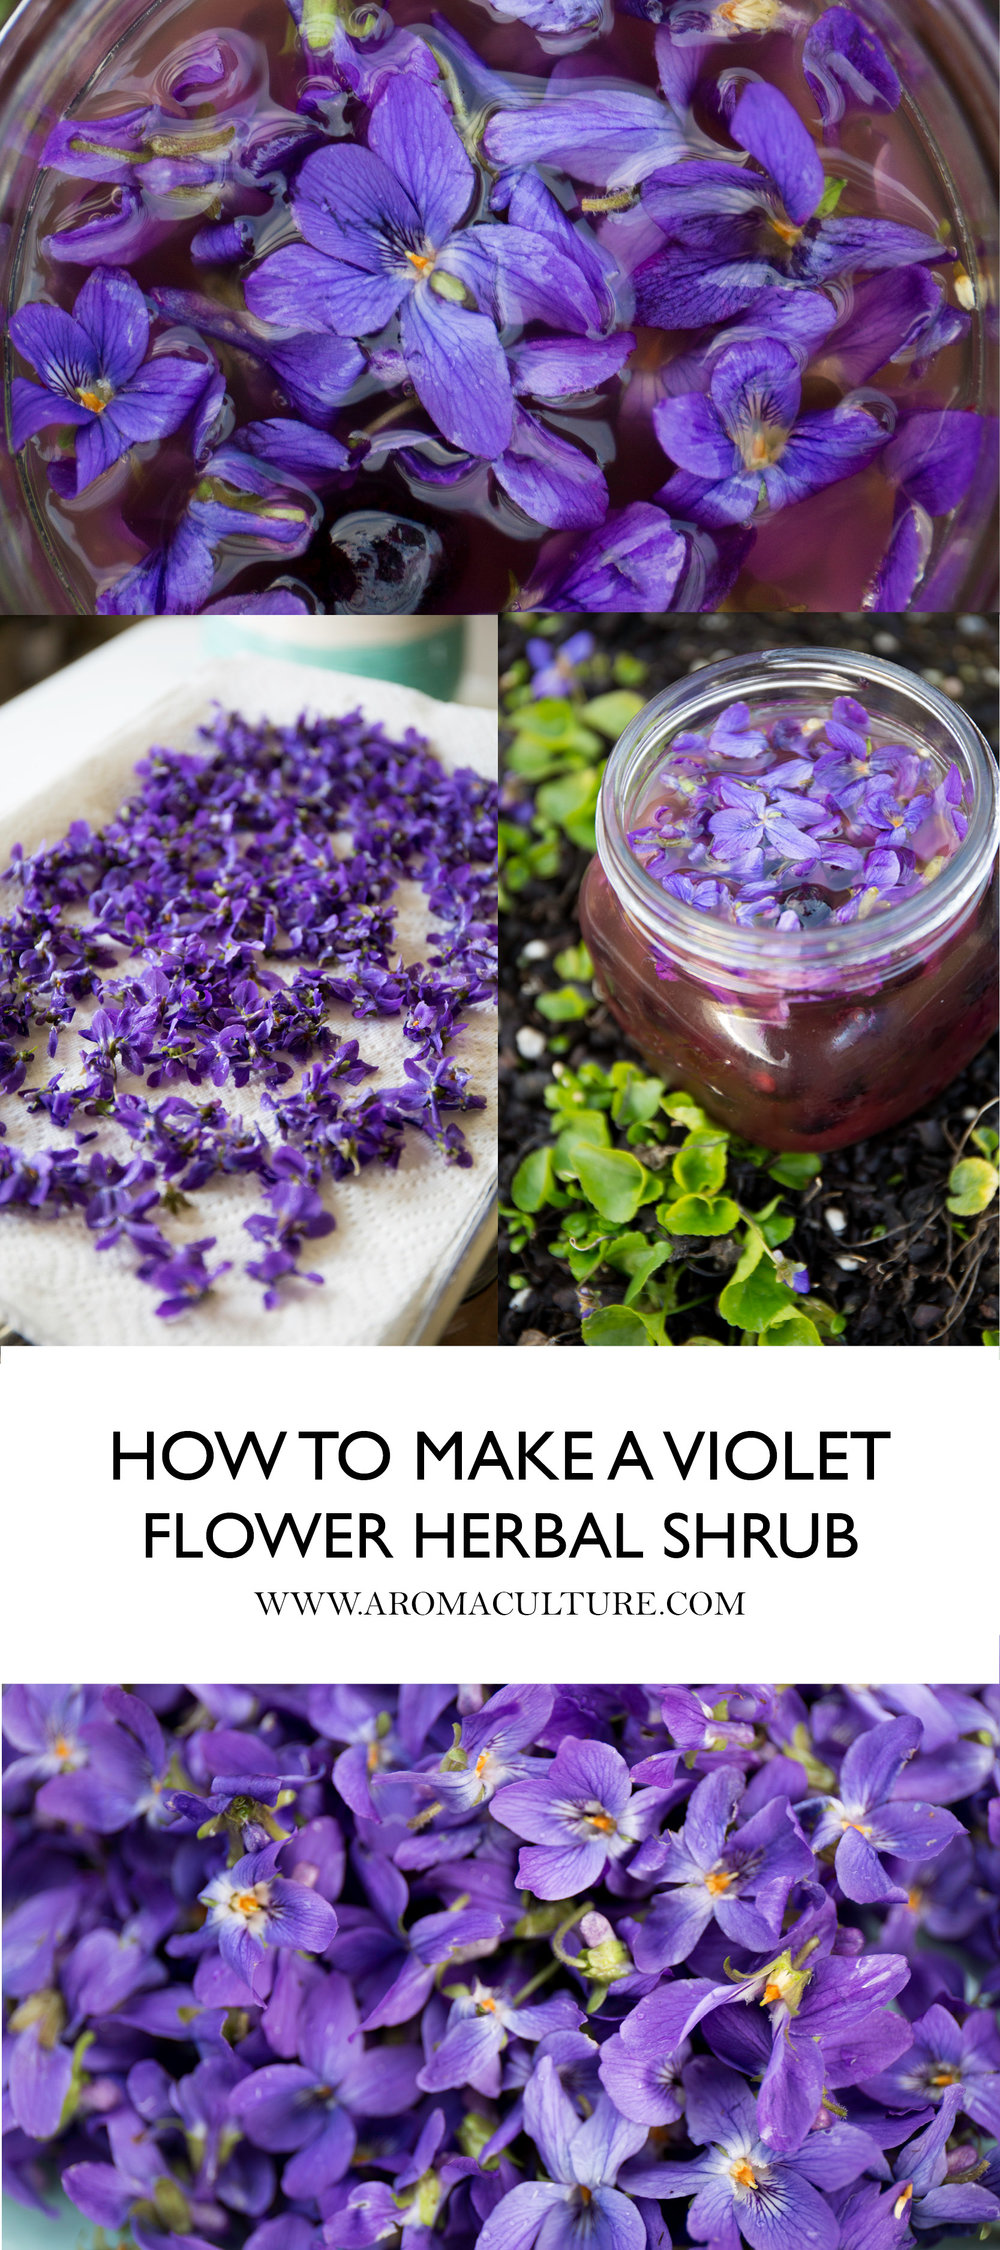 HOW TO MAKE VIOLET FLOWER HERBAL SHRUB BY AROMACULTURE.jpg